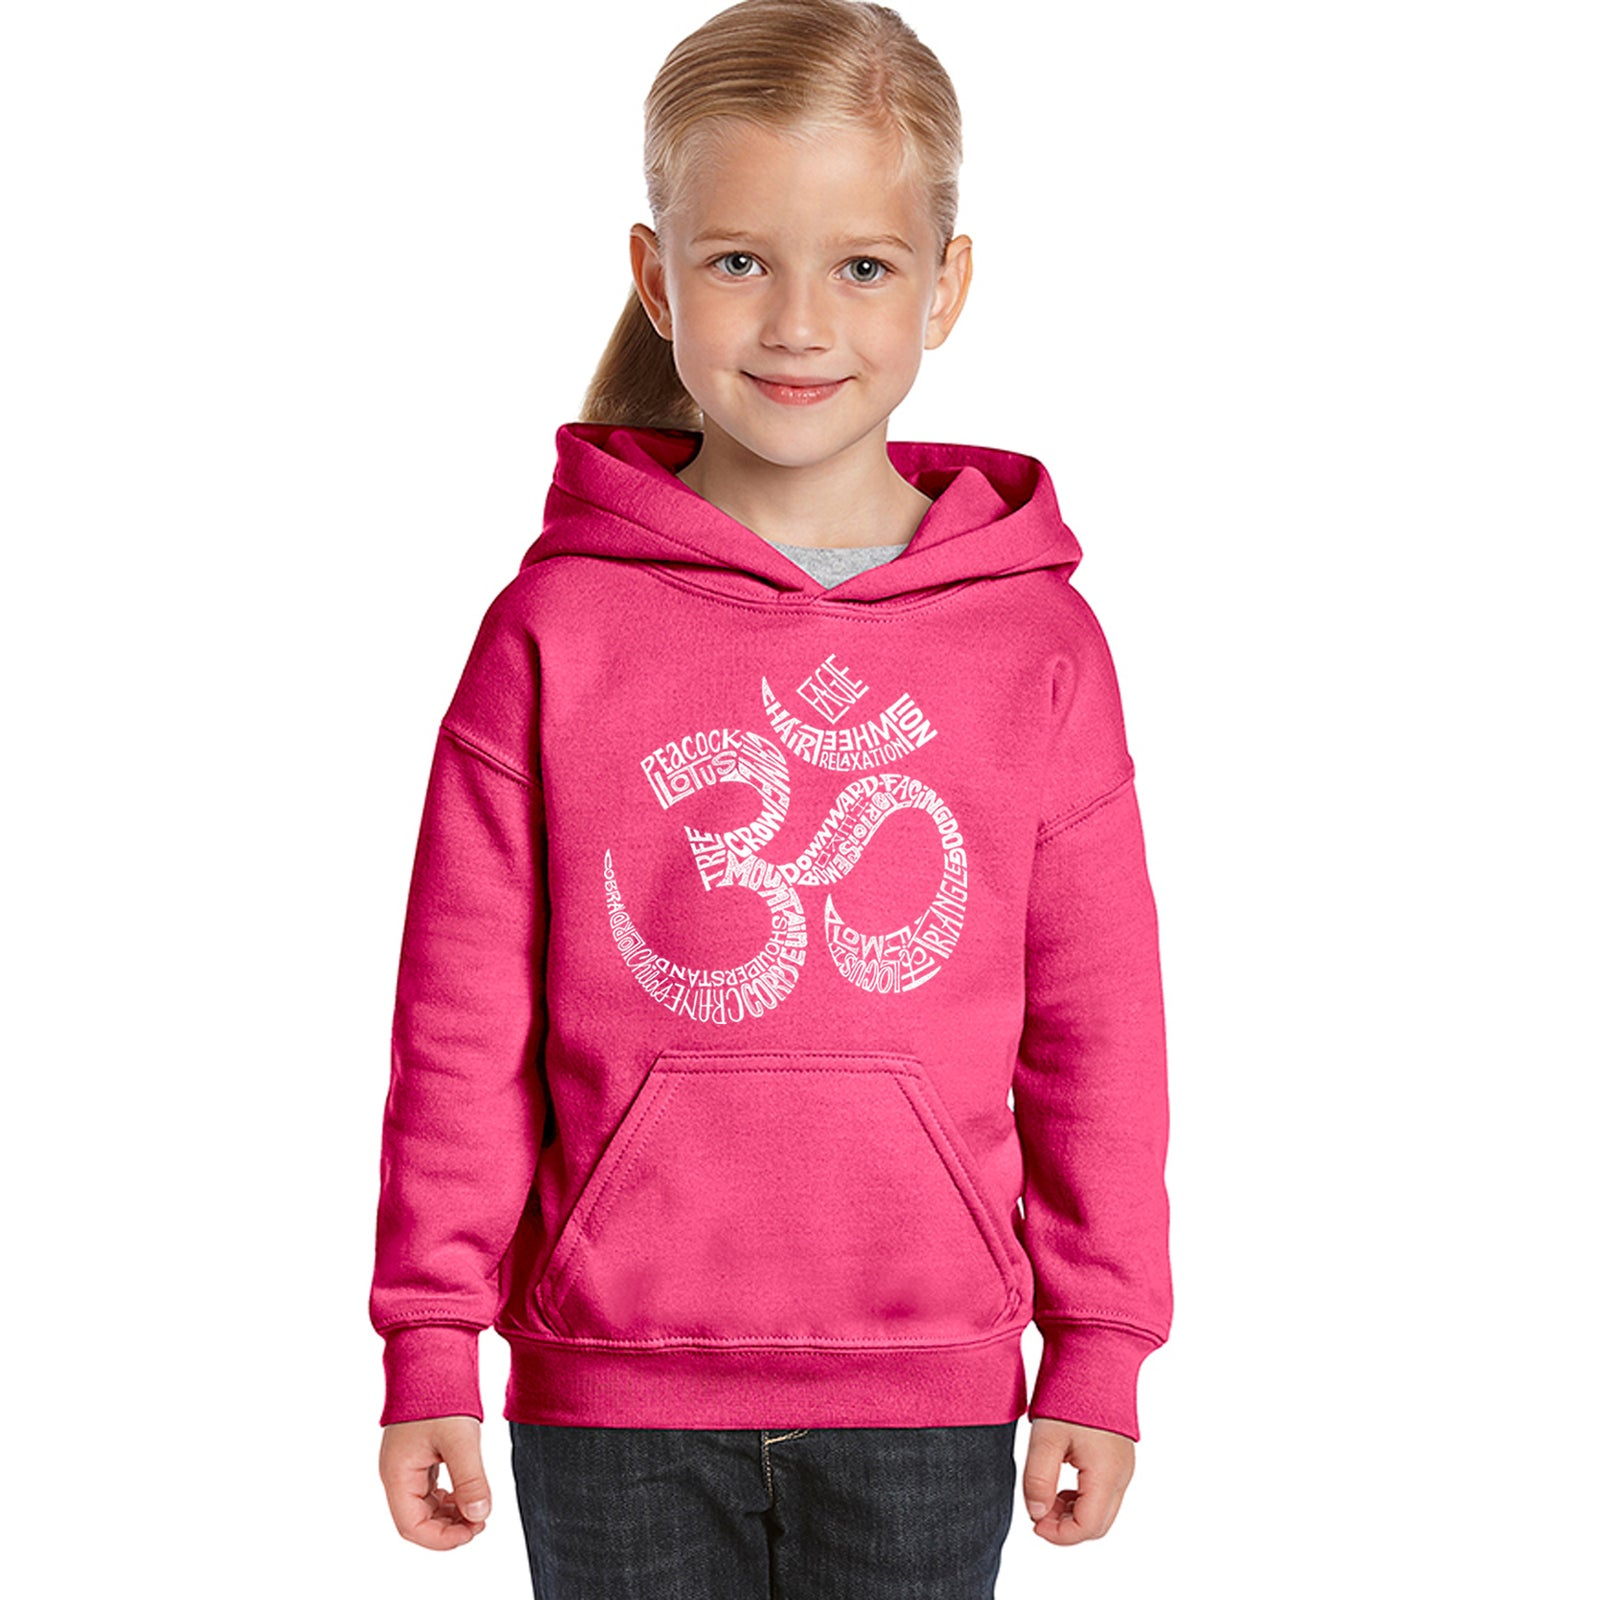 Girl's Hooded Sweatshirt - Poses OM